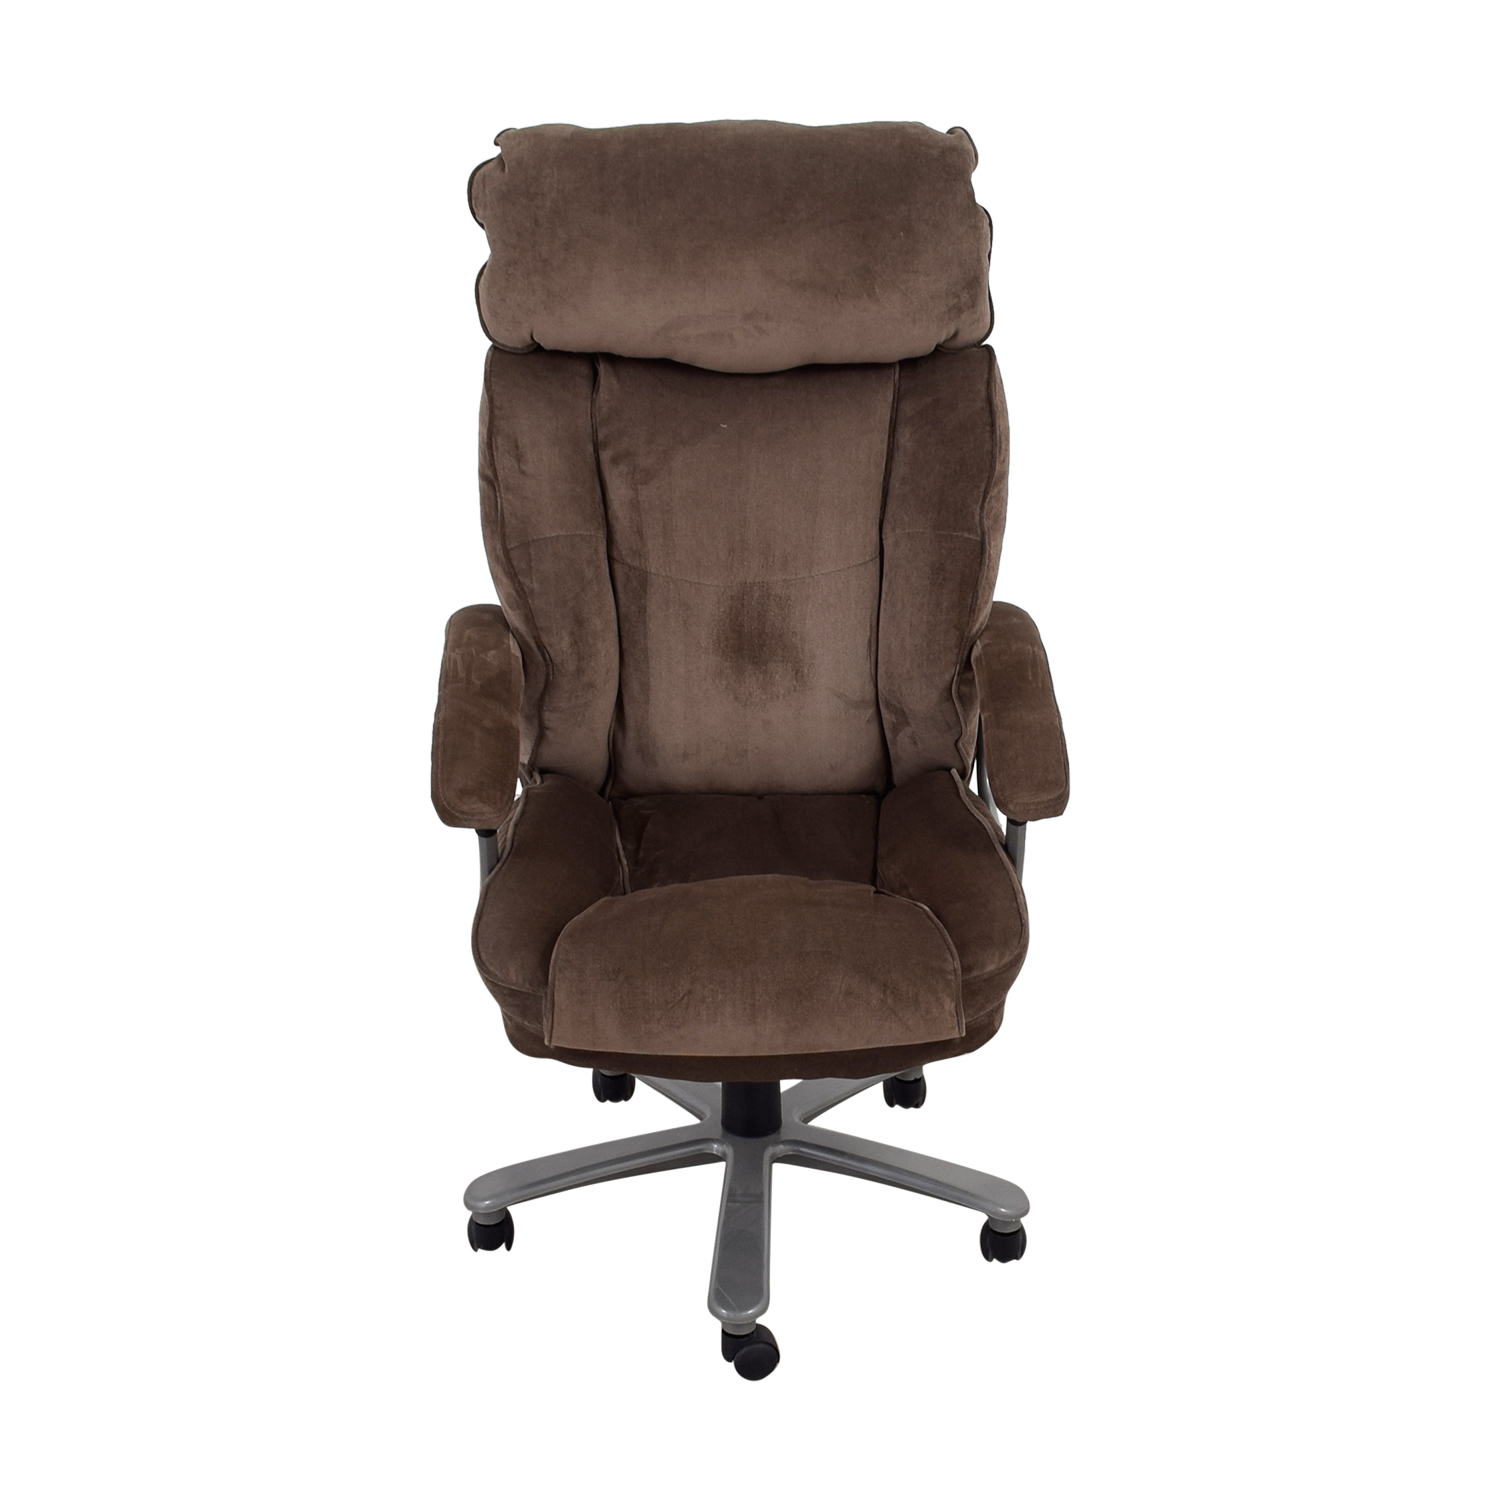 Comfy Office Chair 78 Off Office Depot Office Depot Grey Office Chair Chairs